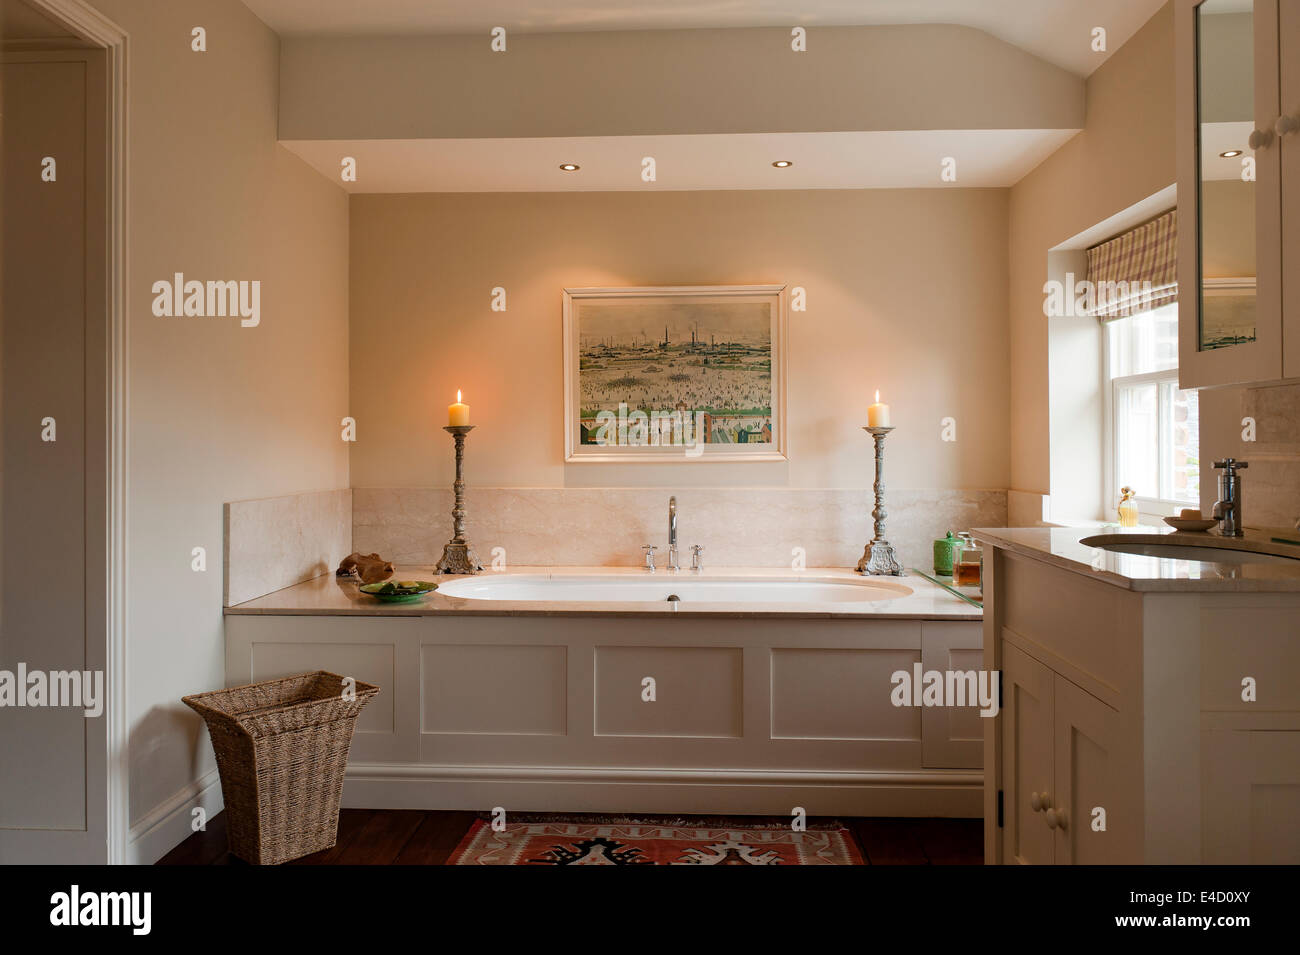 Tranquil Bathroom A Tranquil Bathroom The Bath Has Been Hidden By Wooden Panelling